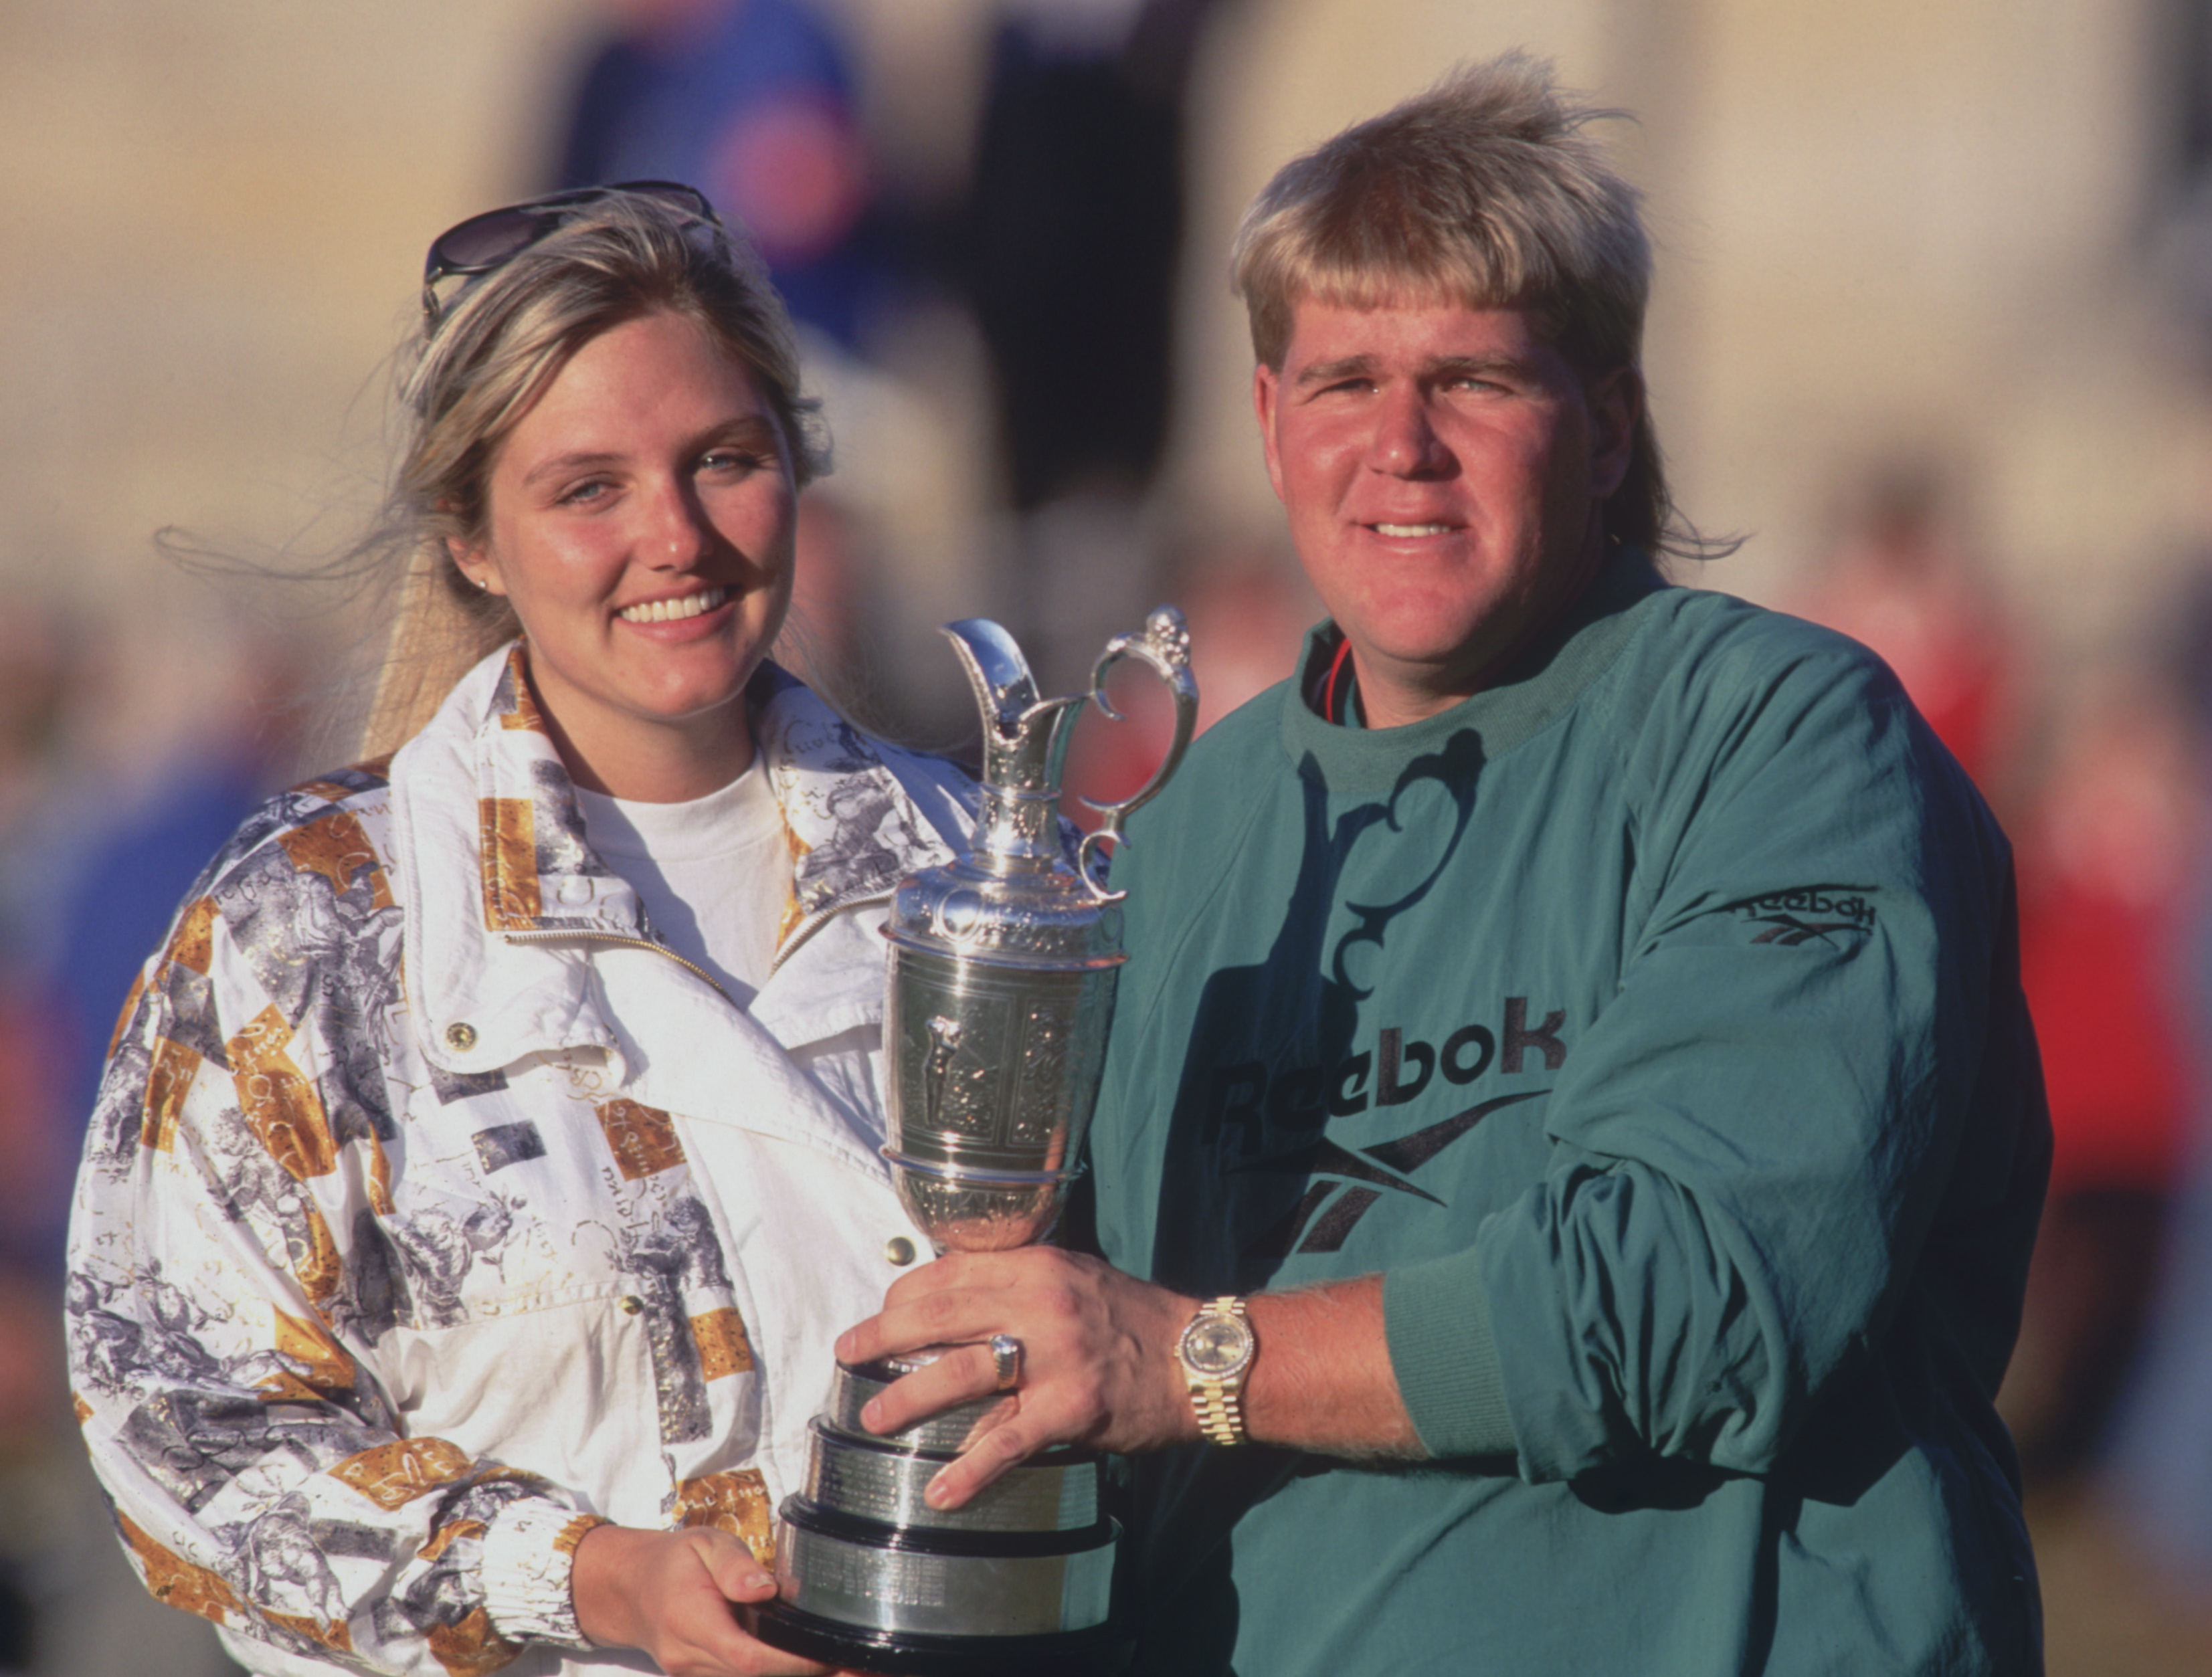 1995  steven bottomley nearly wins the st andrews open